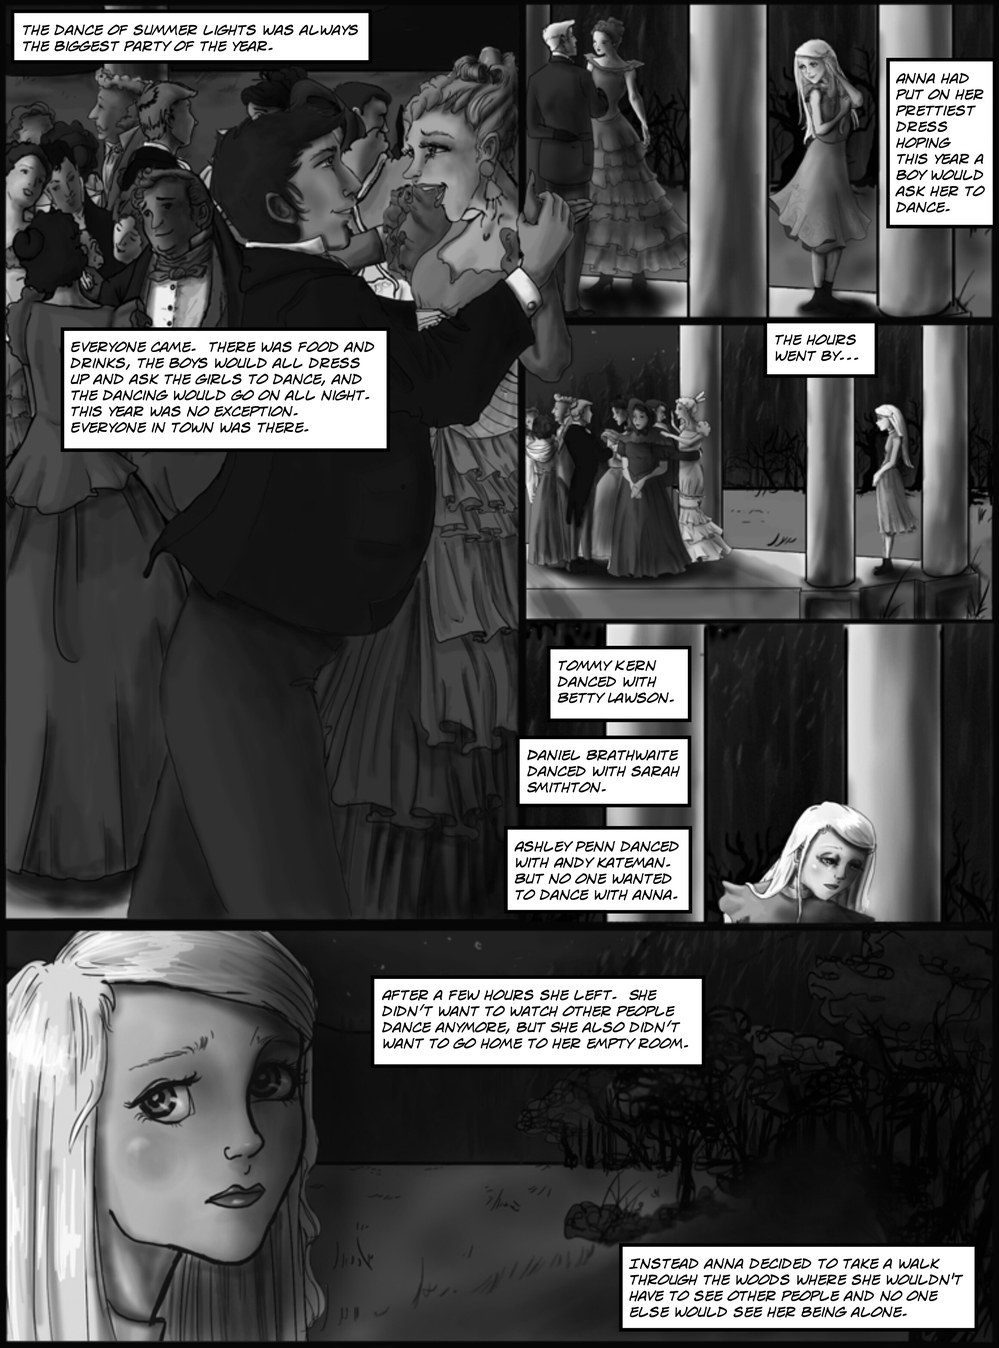 OTHER PEOPLE'S HOUSES page 2 -- in The Book of Lies